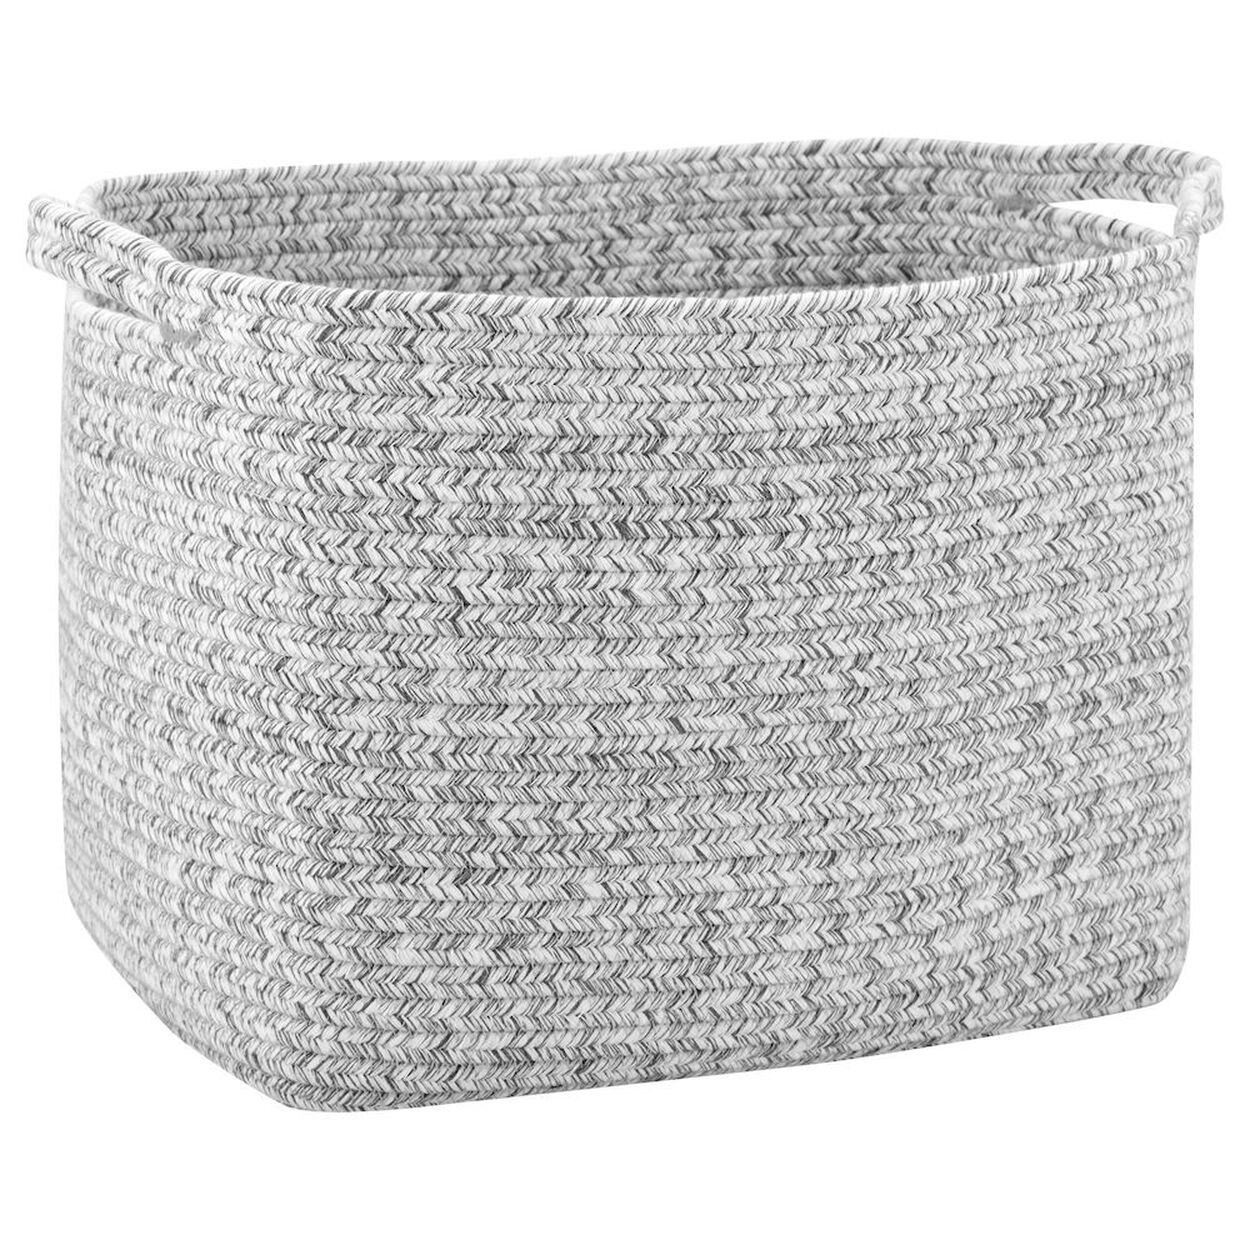 Medium Cotton String Storage Basket